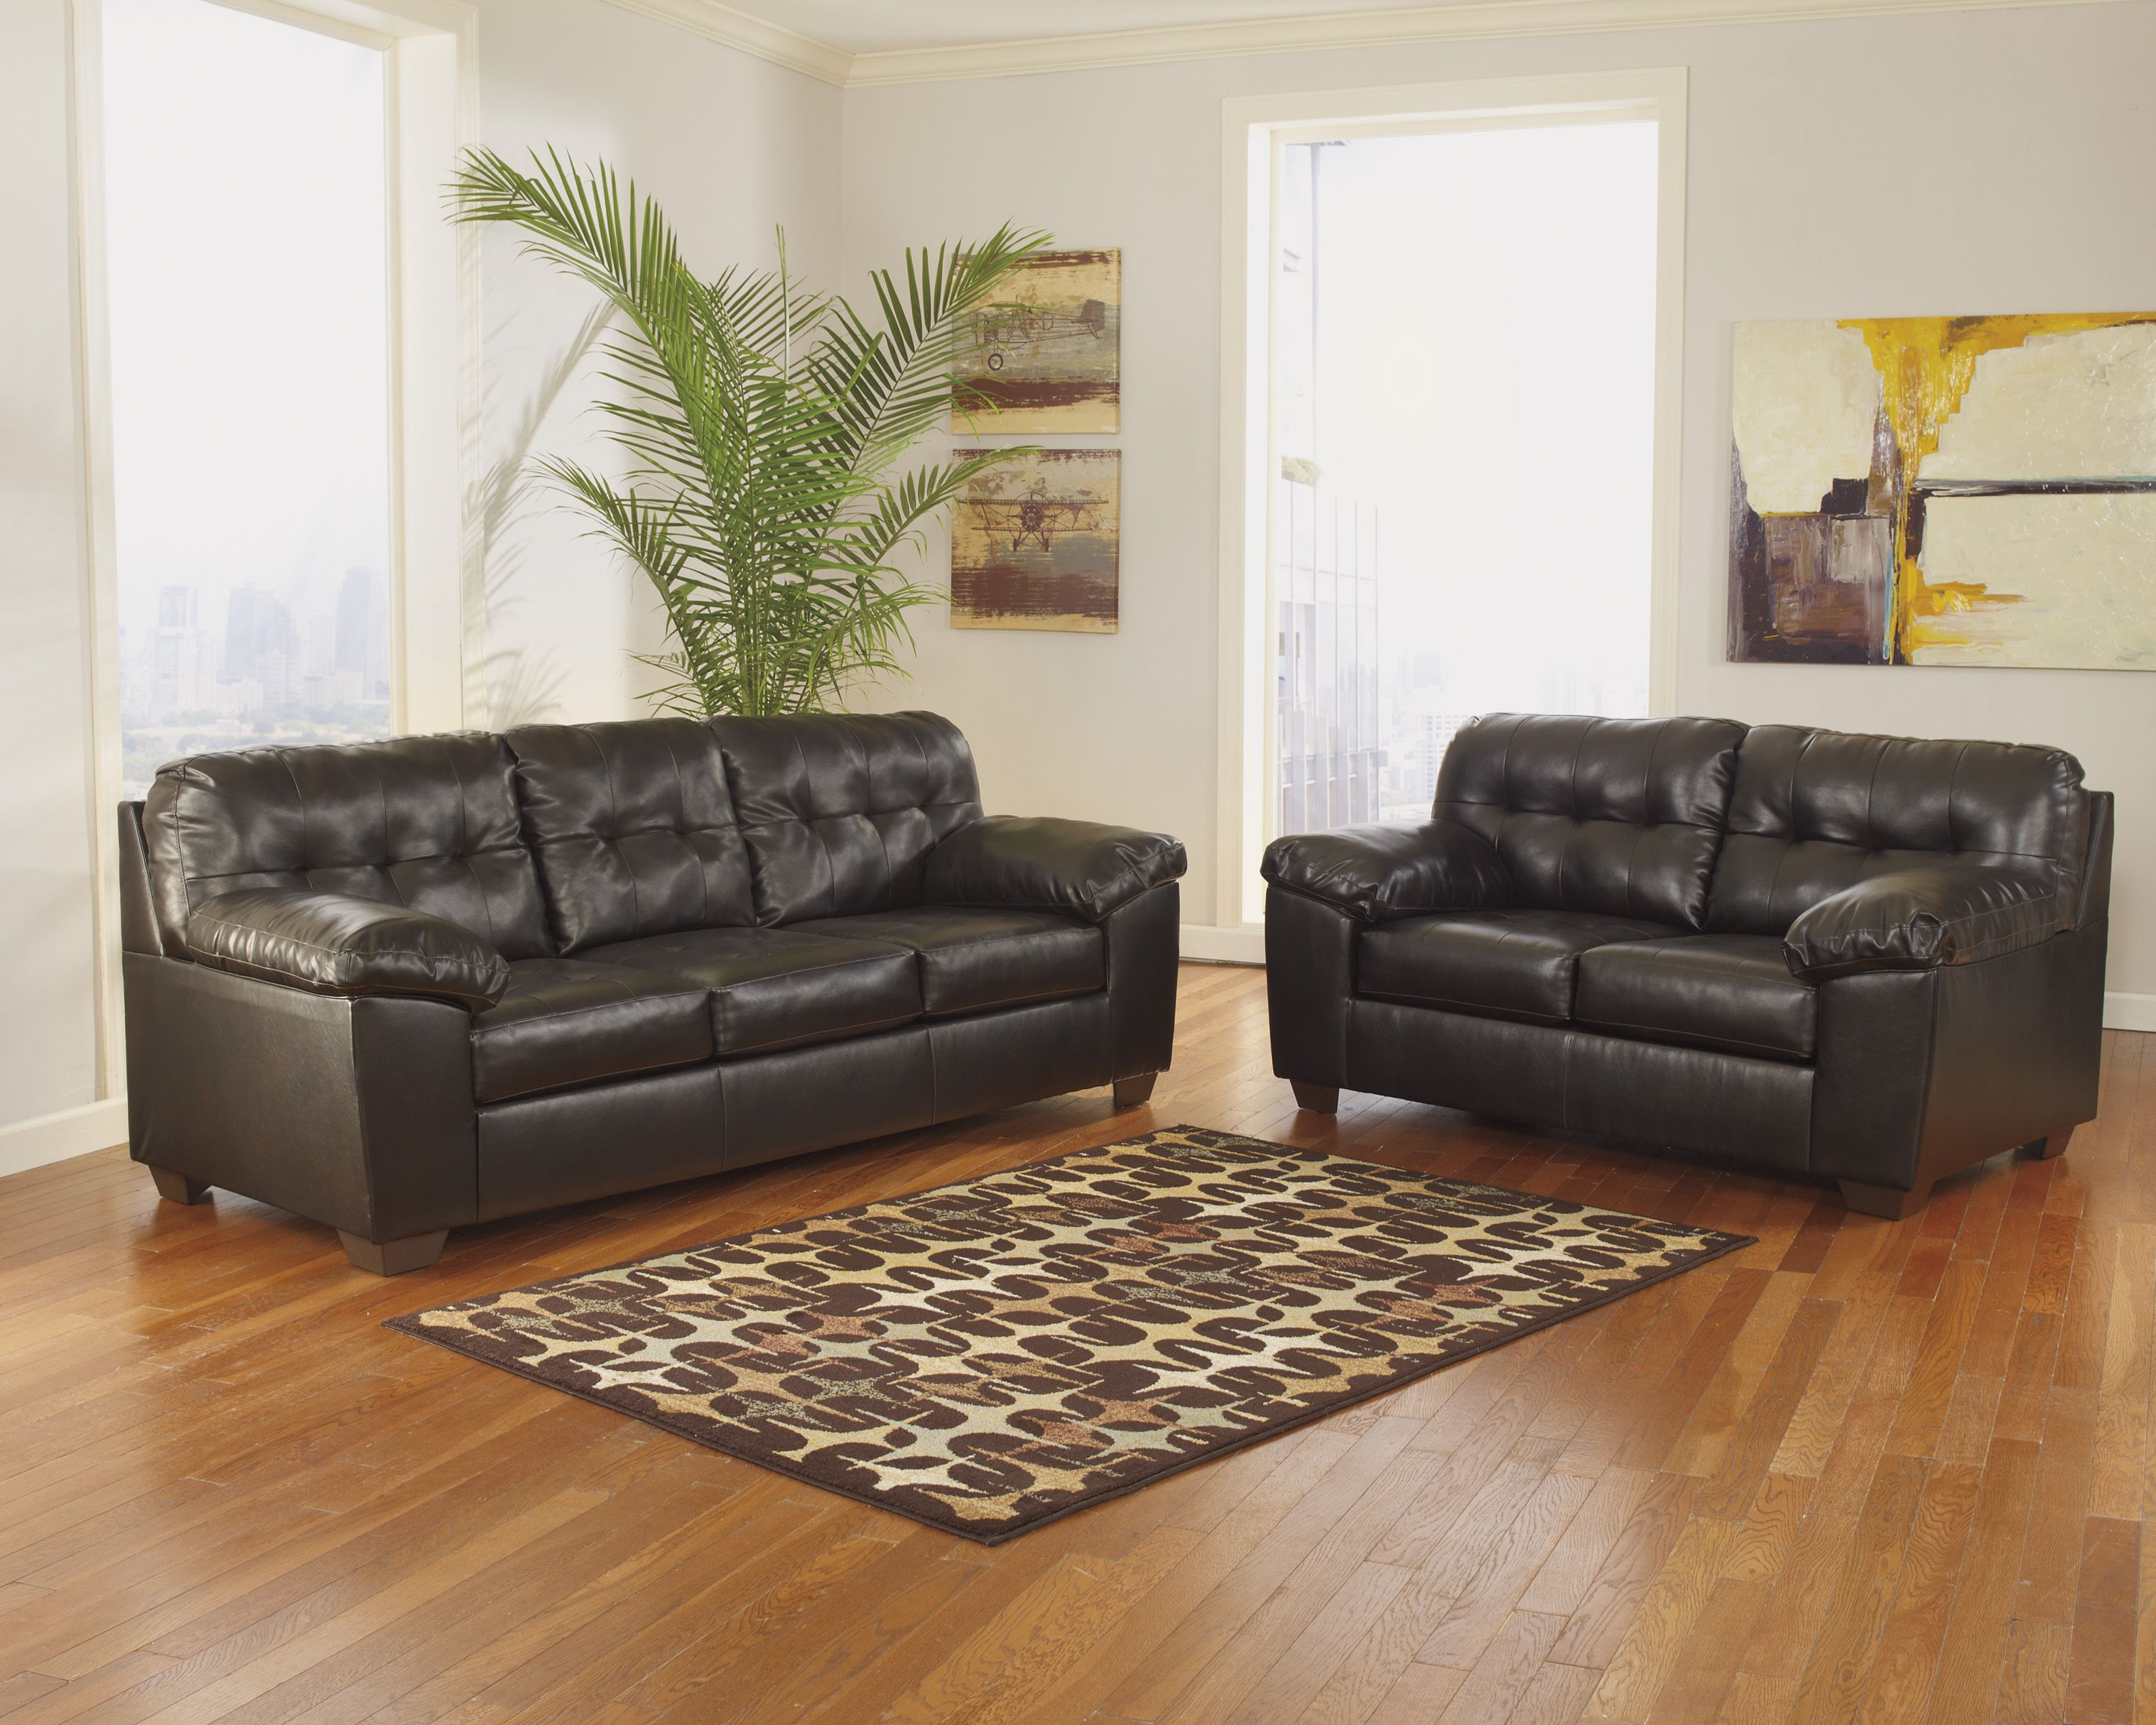 Pin Sofacouchs On Contemporary Sofa Leather Living Room regarding sizing 3000 X 2400